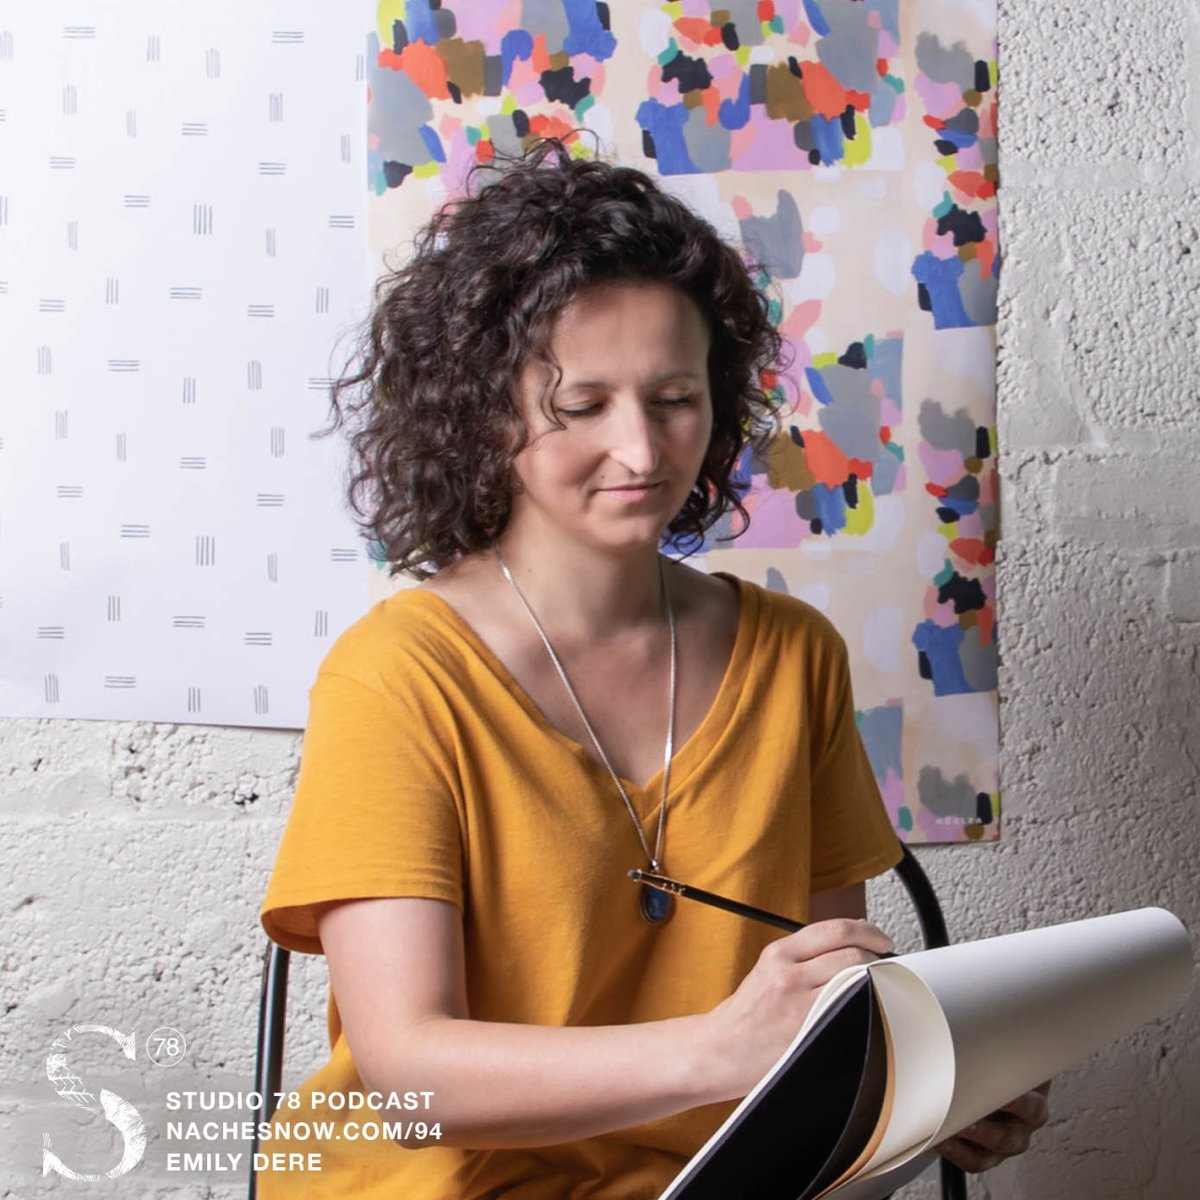 In this episode of the Studio 78 Podcast, I chat with illustrator Emily Dere about how she began selling her illustrated merchandise as a side hustle. Listen: https://bit.ly/34exK3t  #entrepreneur #creativewomen #womeninillustrationpic.twitter.com/b9jxWGRg5P